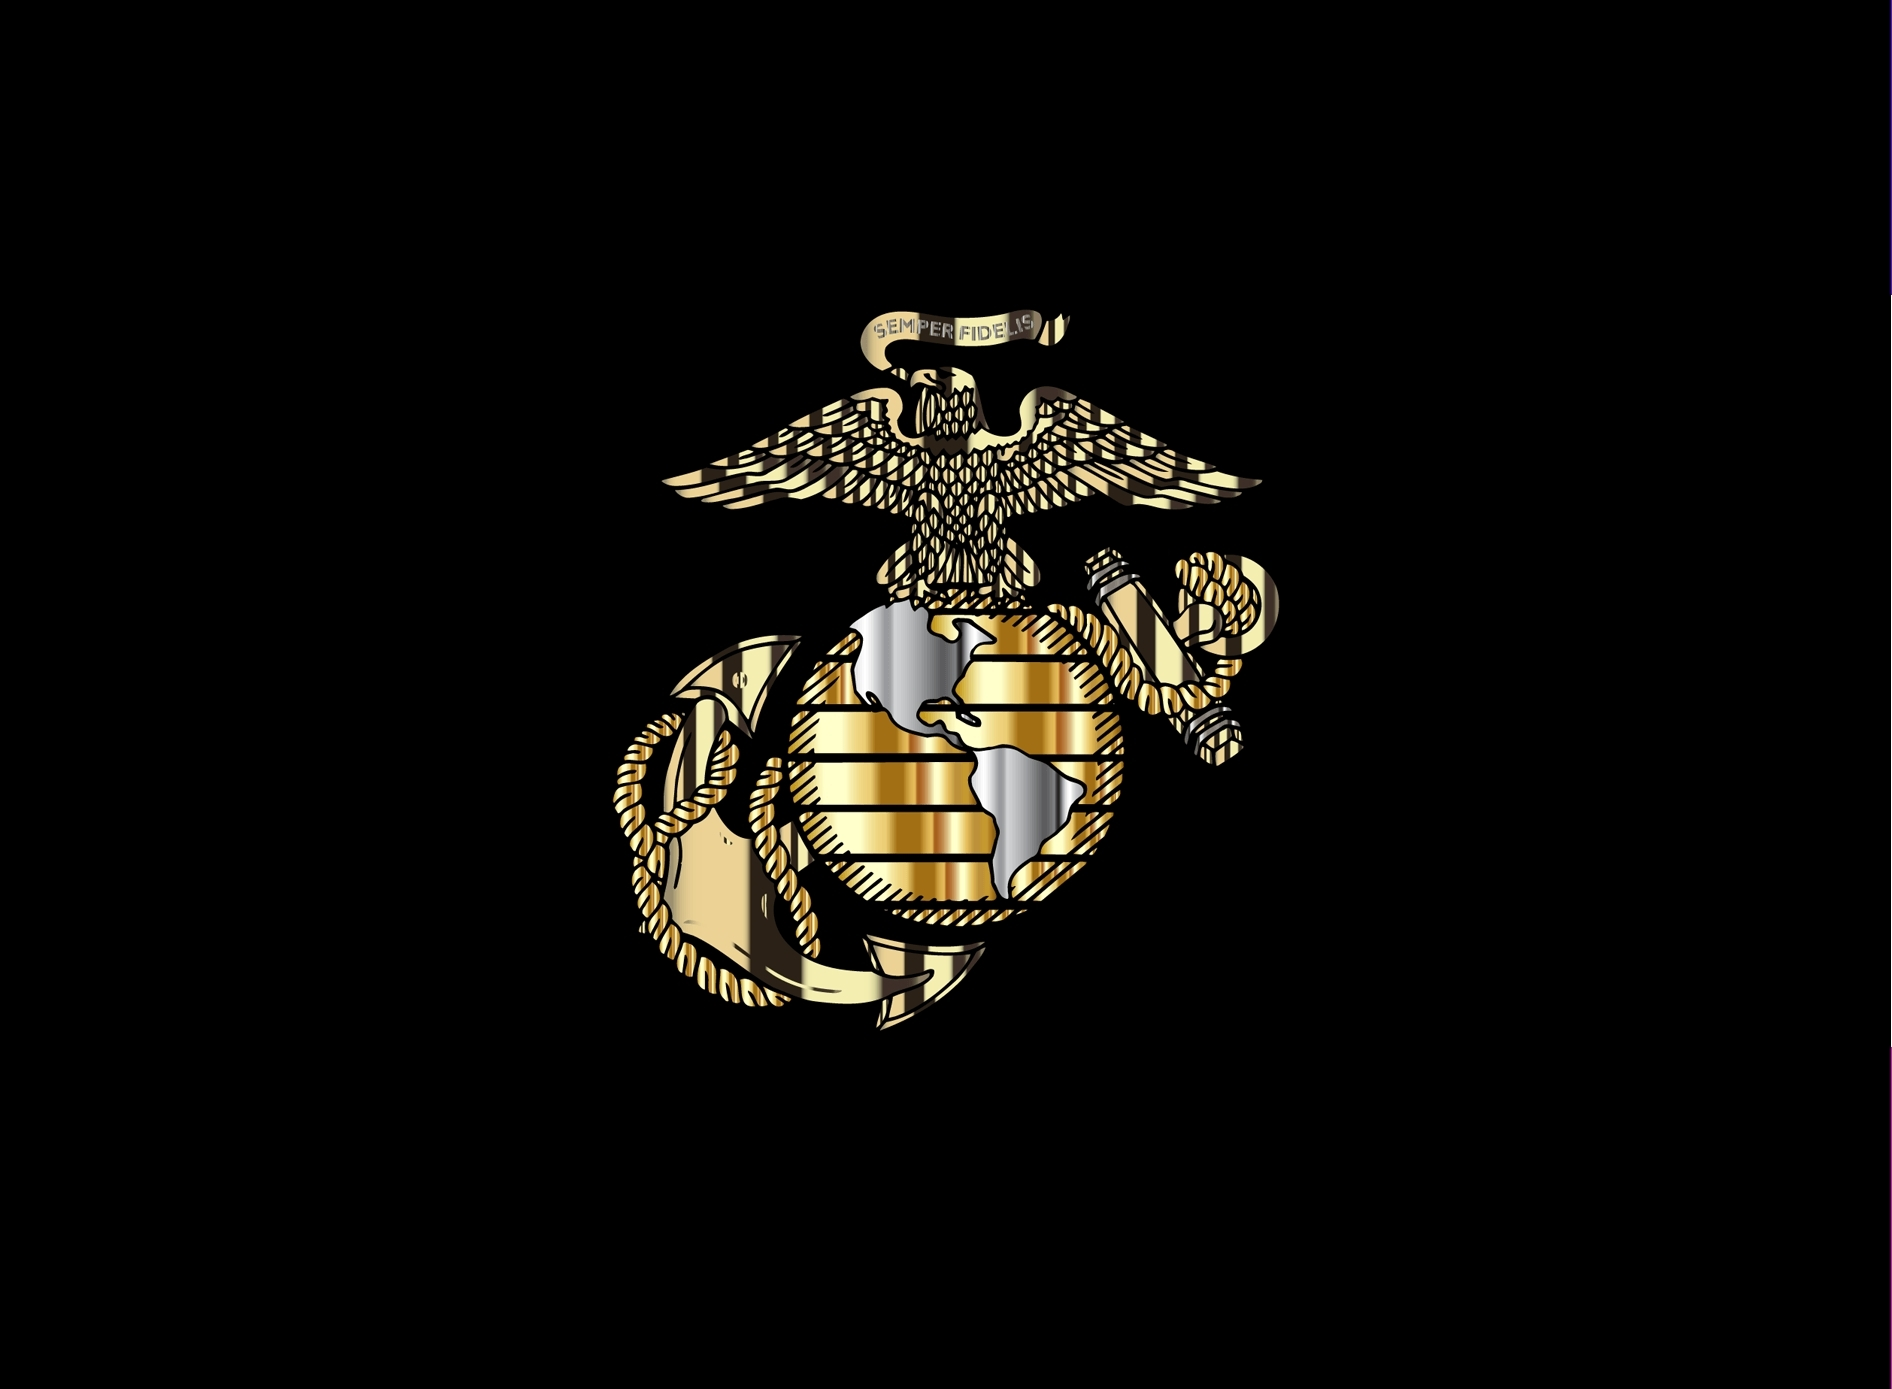 marine corps wallpaper 4k hd of androids pics | wallvie